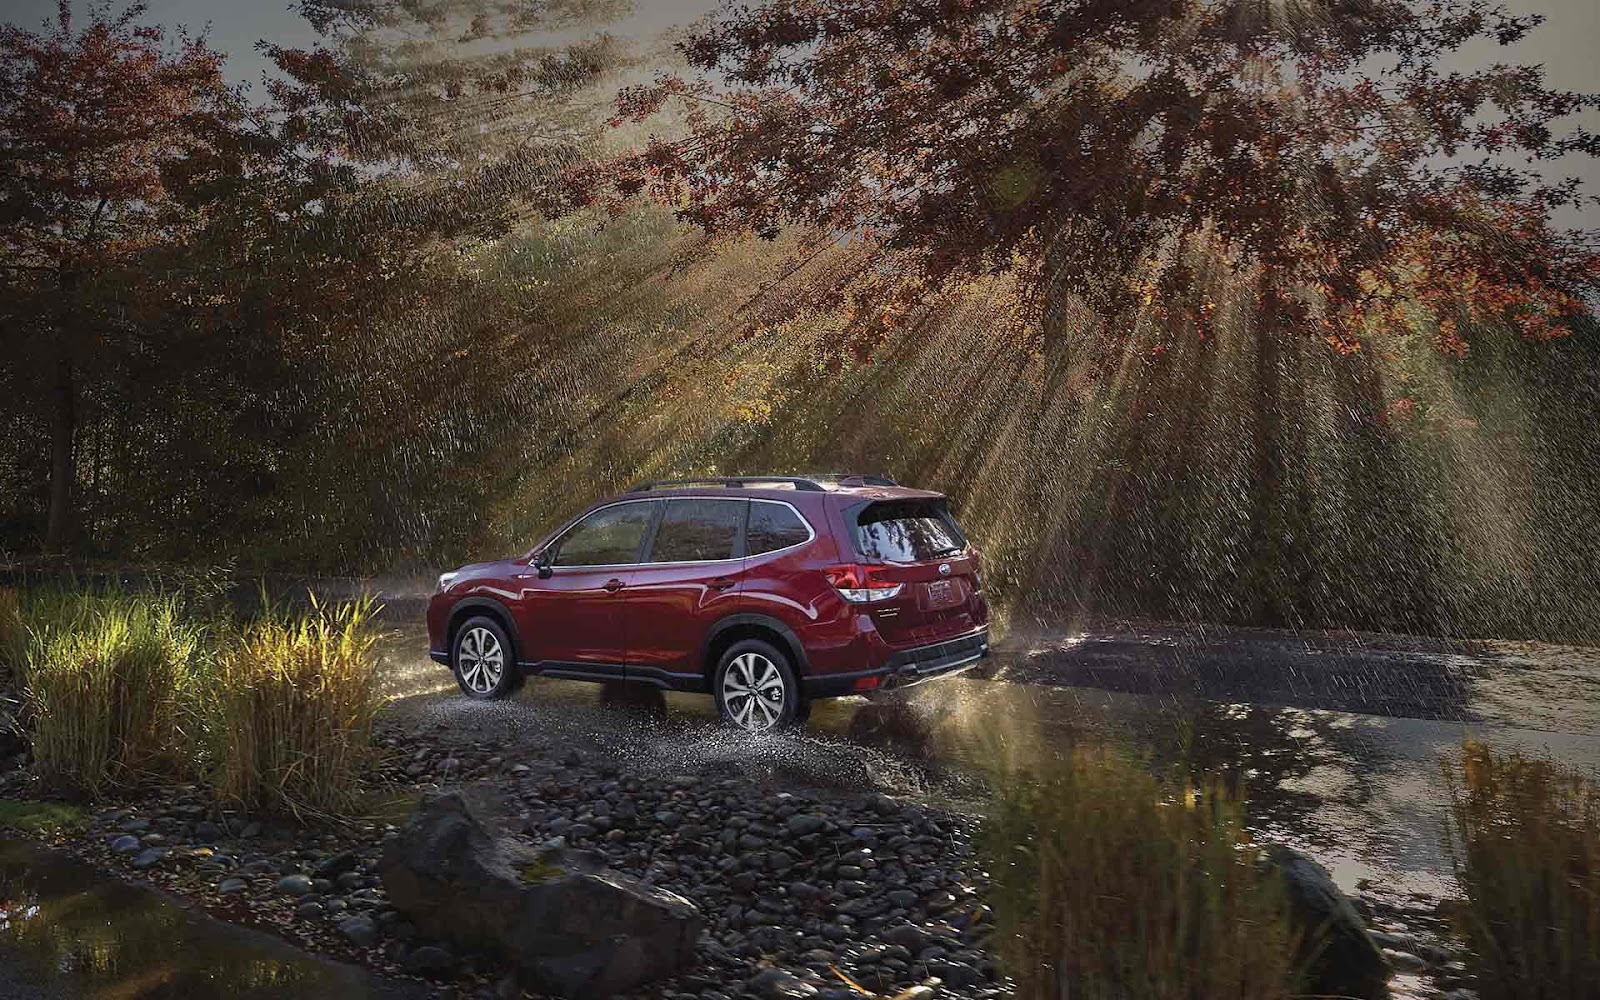 2019 Subaru Forester For Sale In Fayetteville, AR